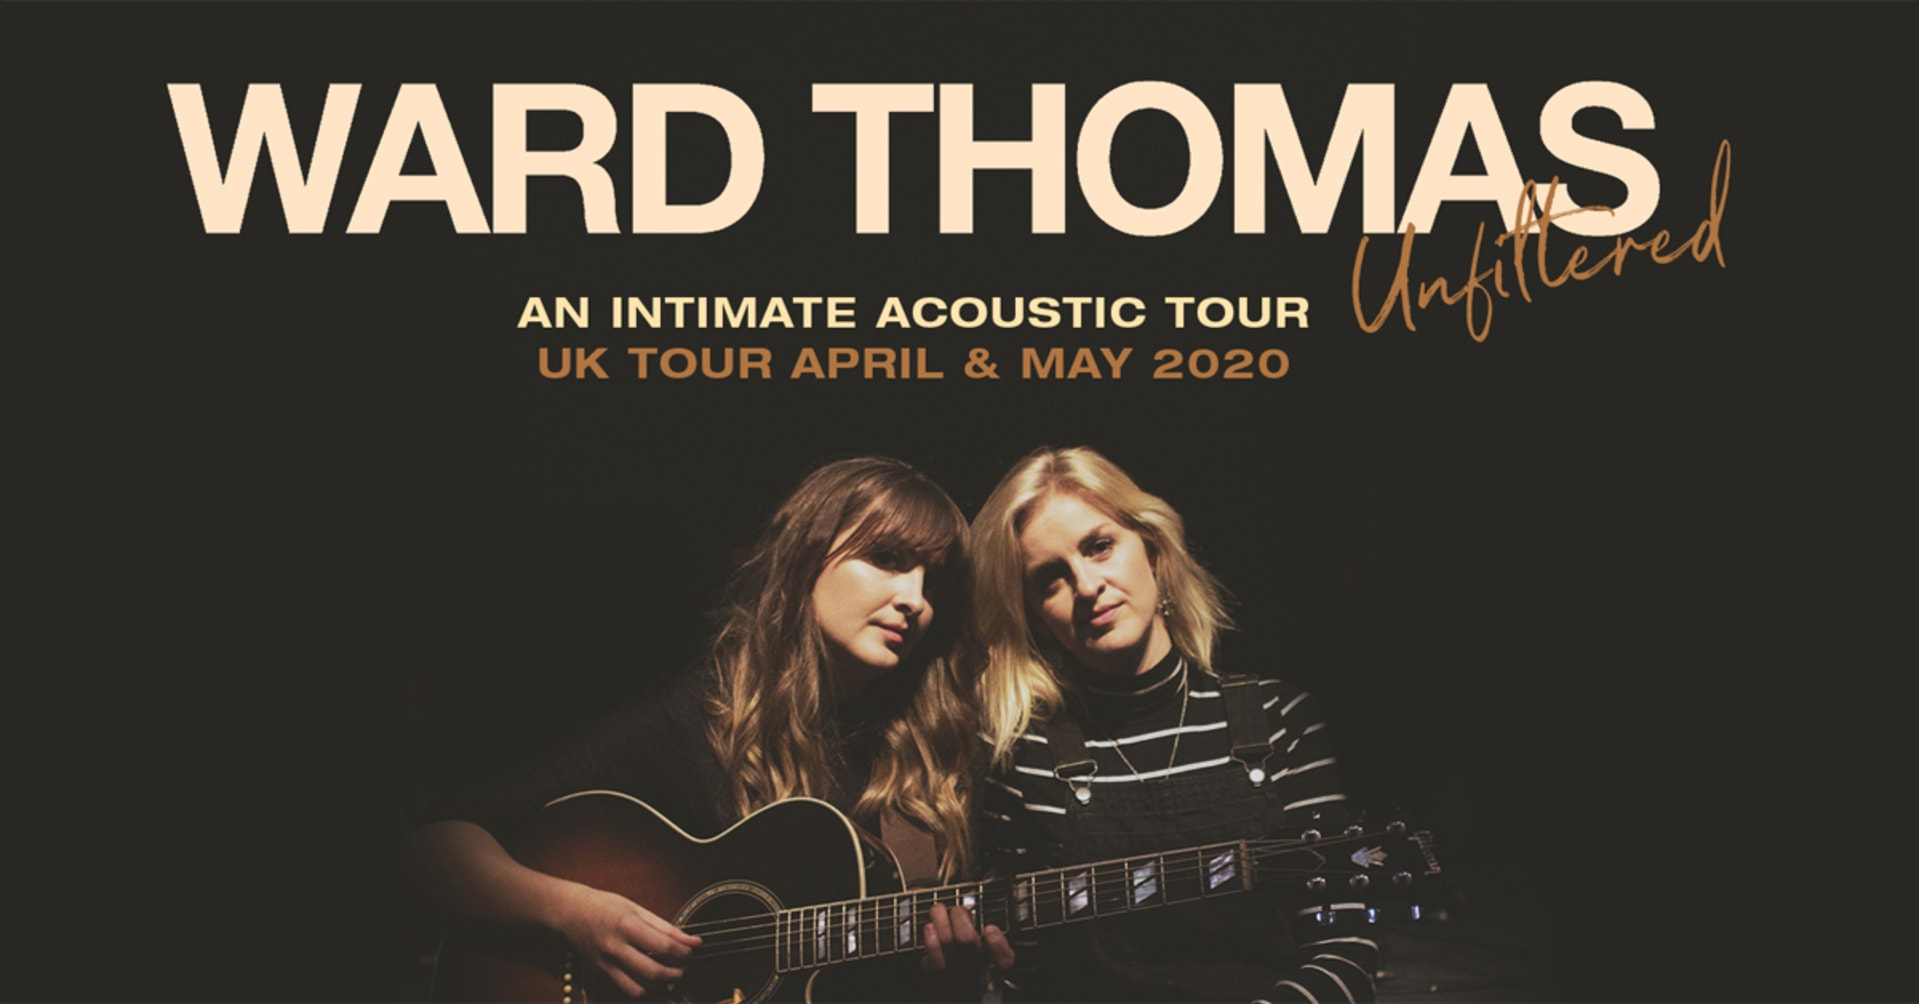 Ward Thomas - Unfiltered Acoustic Tour